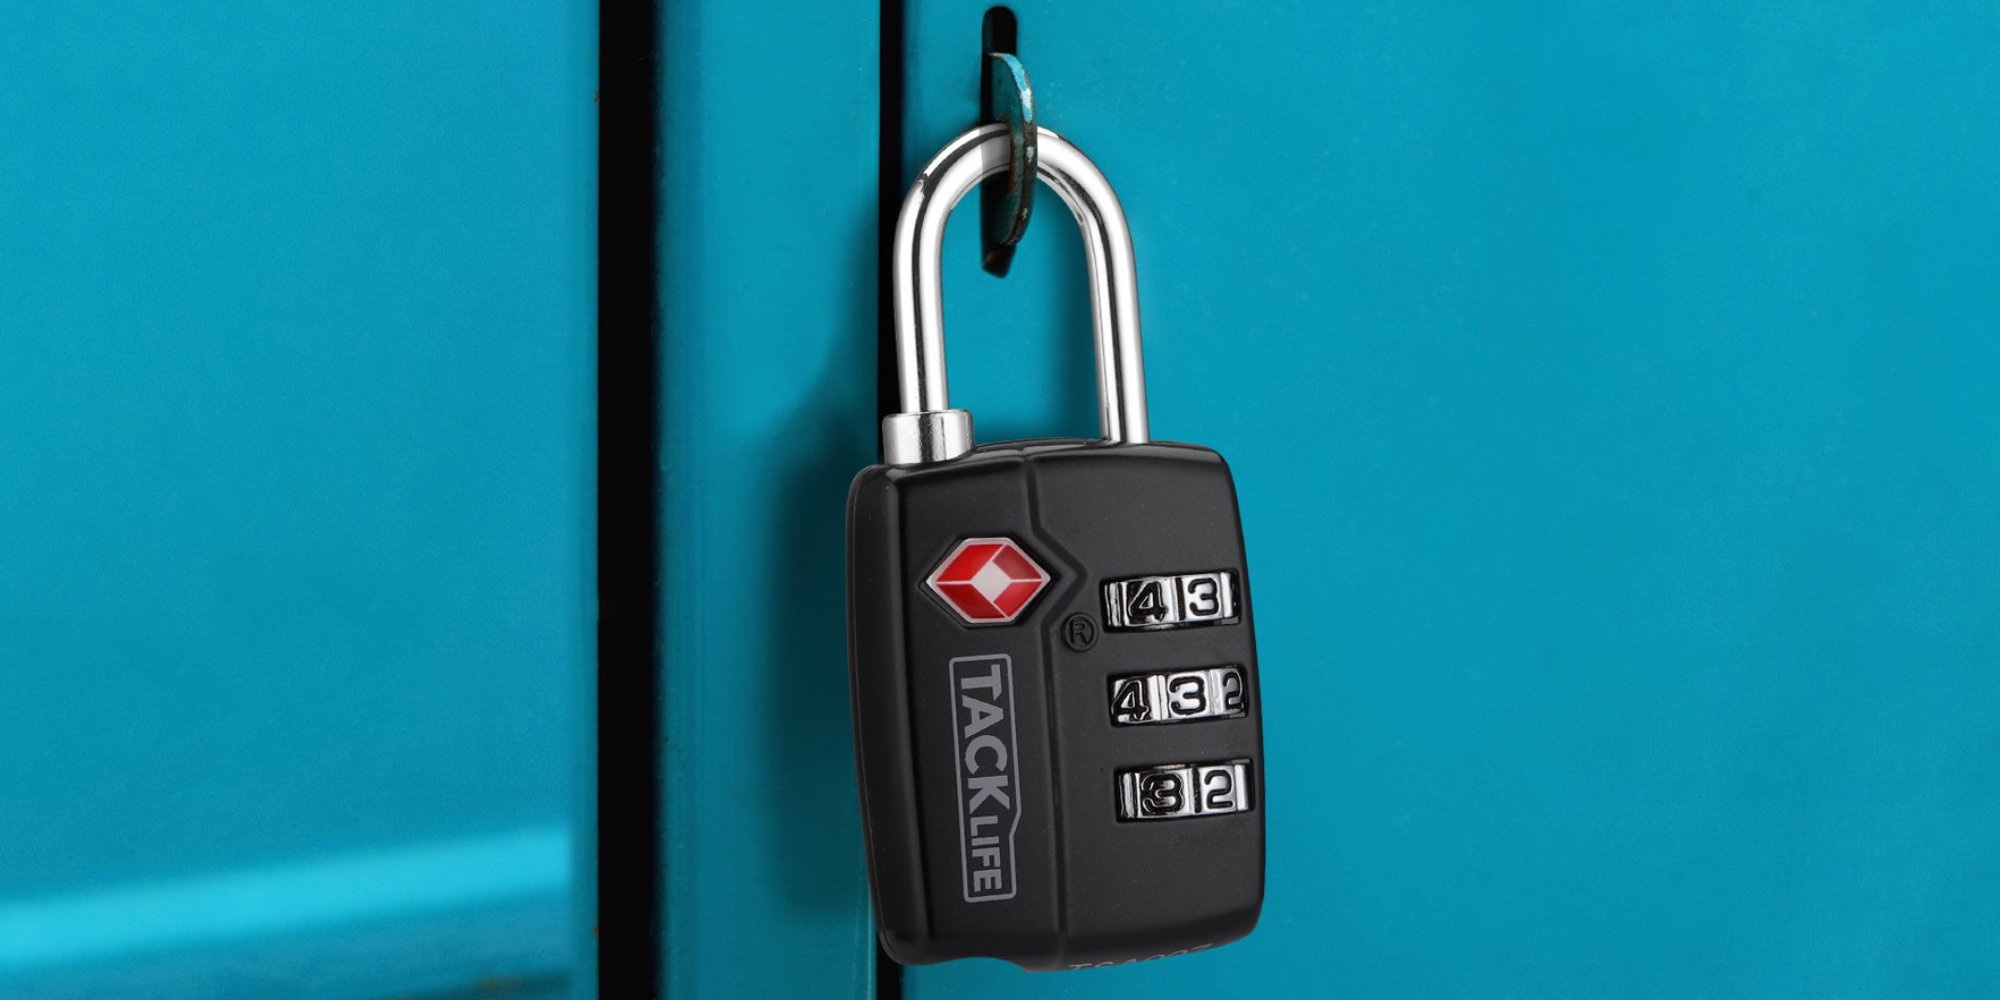 Secure a locker, suitcase, and more w/ two 3-Digit Combination Locks for $6.50 (55% off)